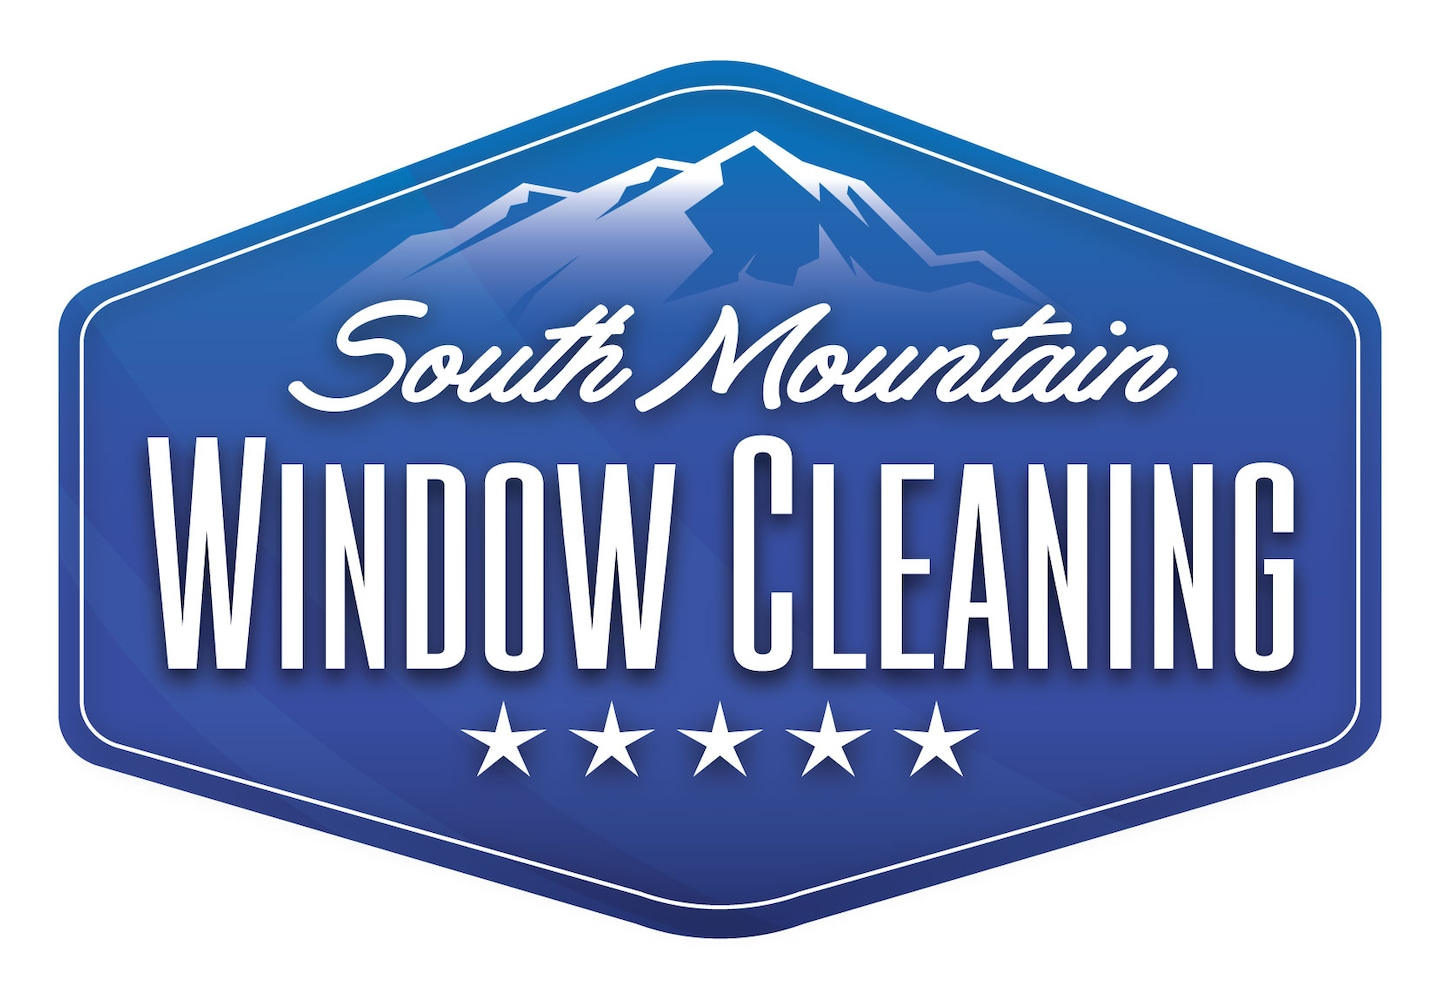 South Mountain Window Cleaning